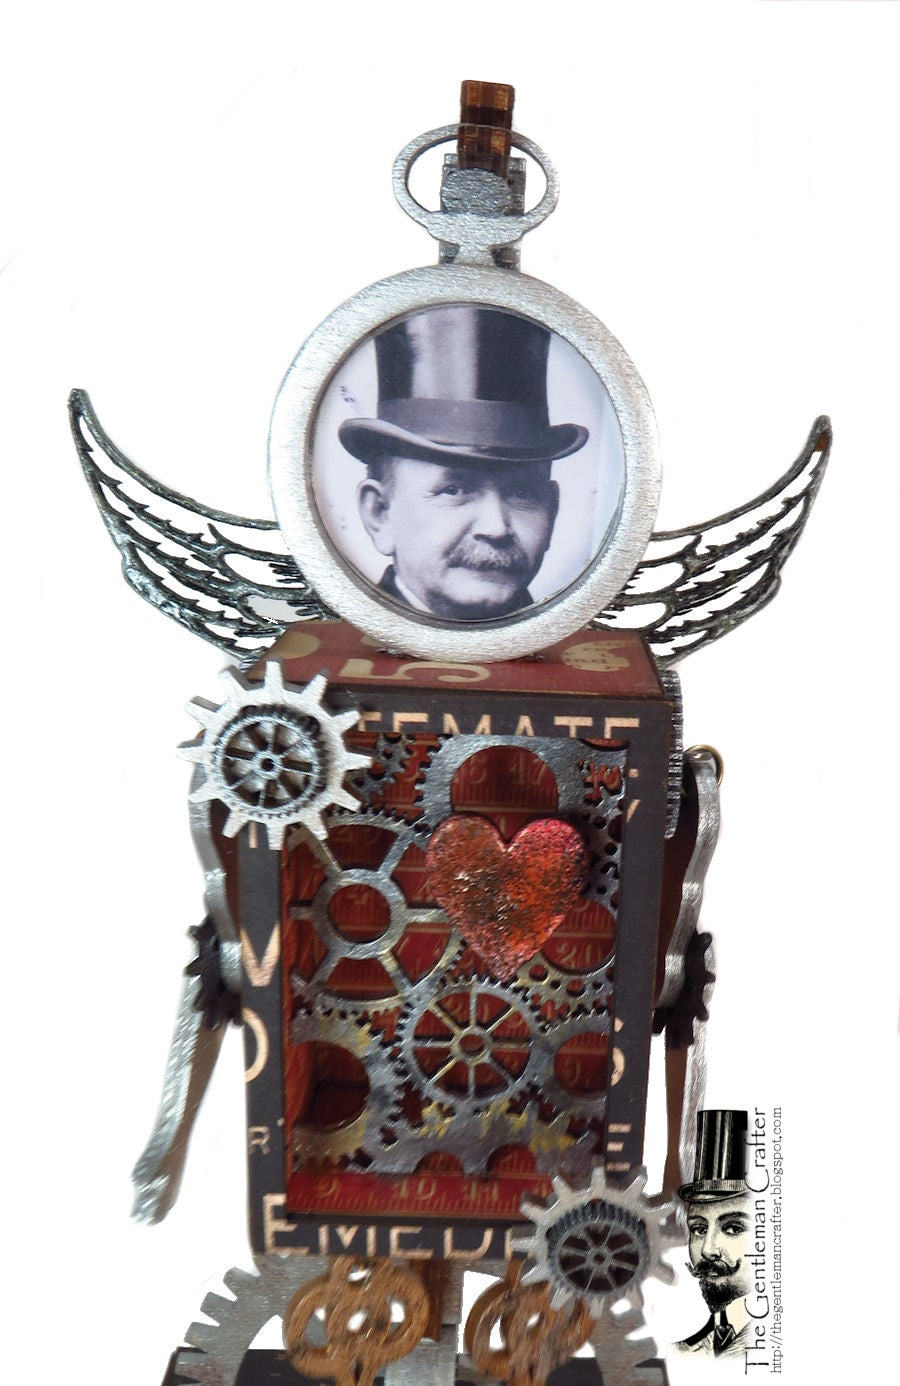 Image of Steampunk Mixed Media Figure on Stand